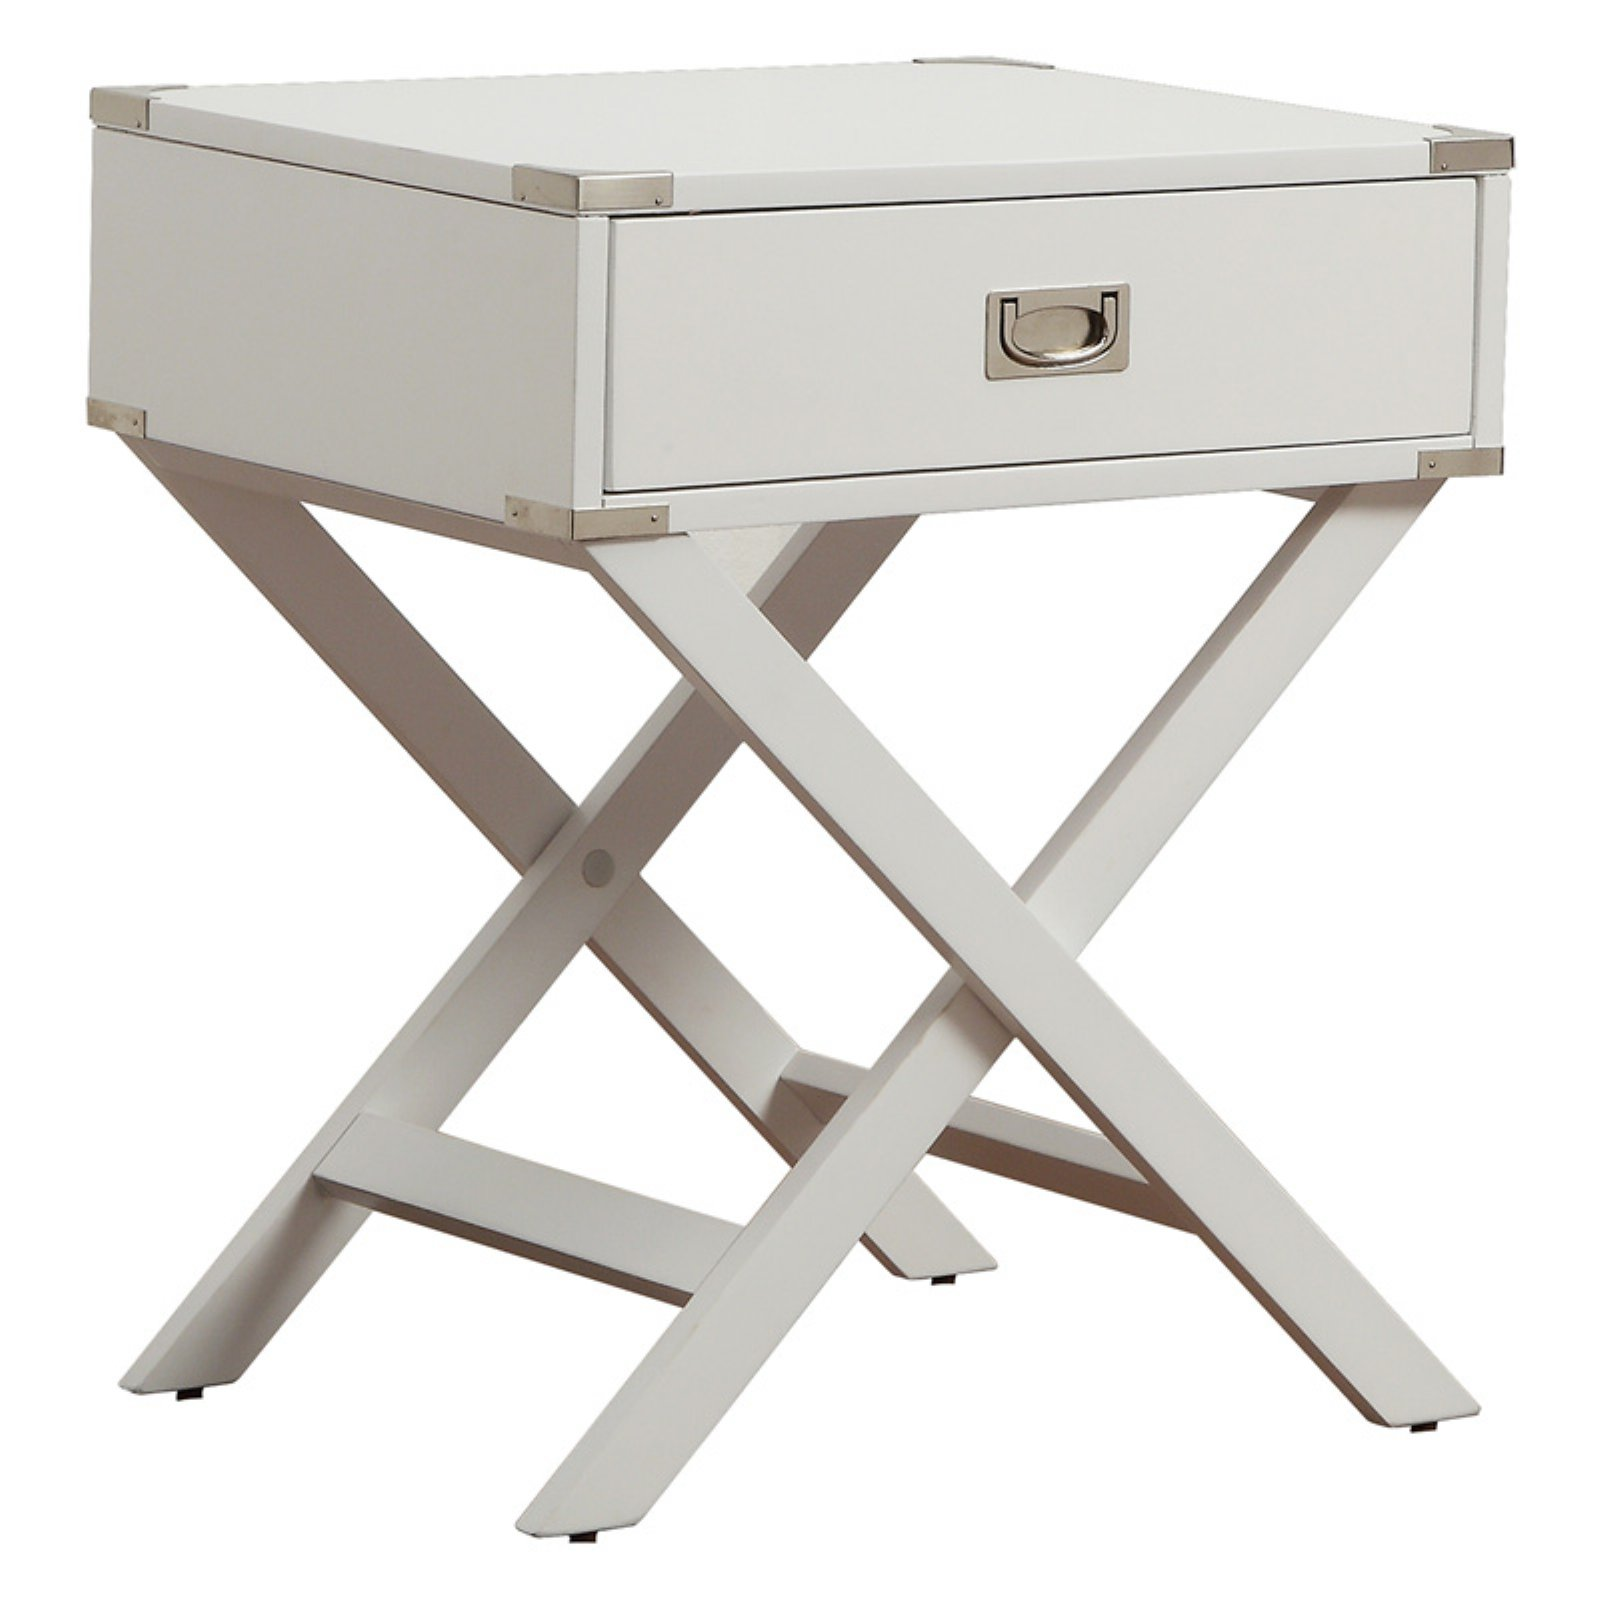 Weston Home Modern End Table with X based Table Legs, Multiple End Table Finishes